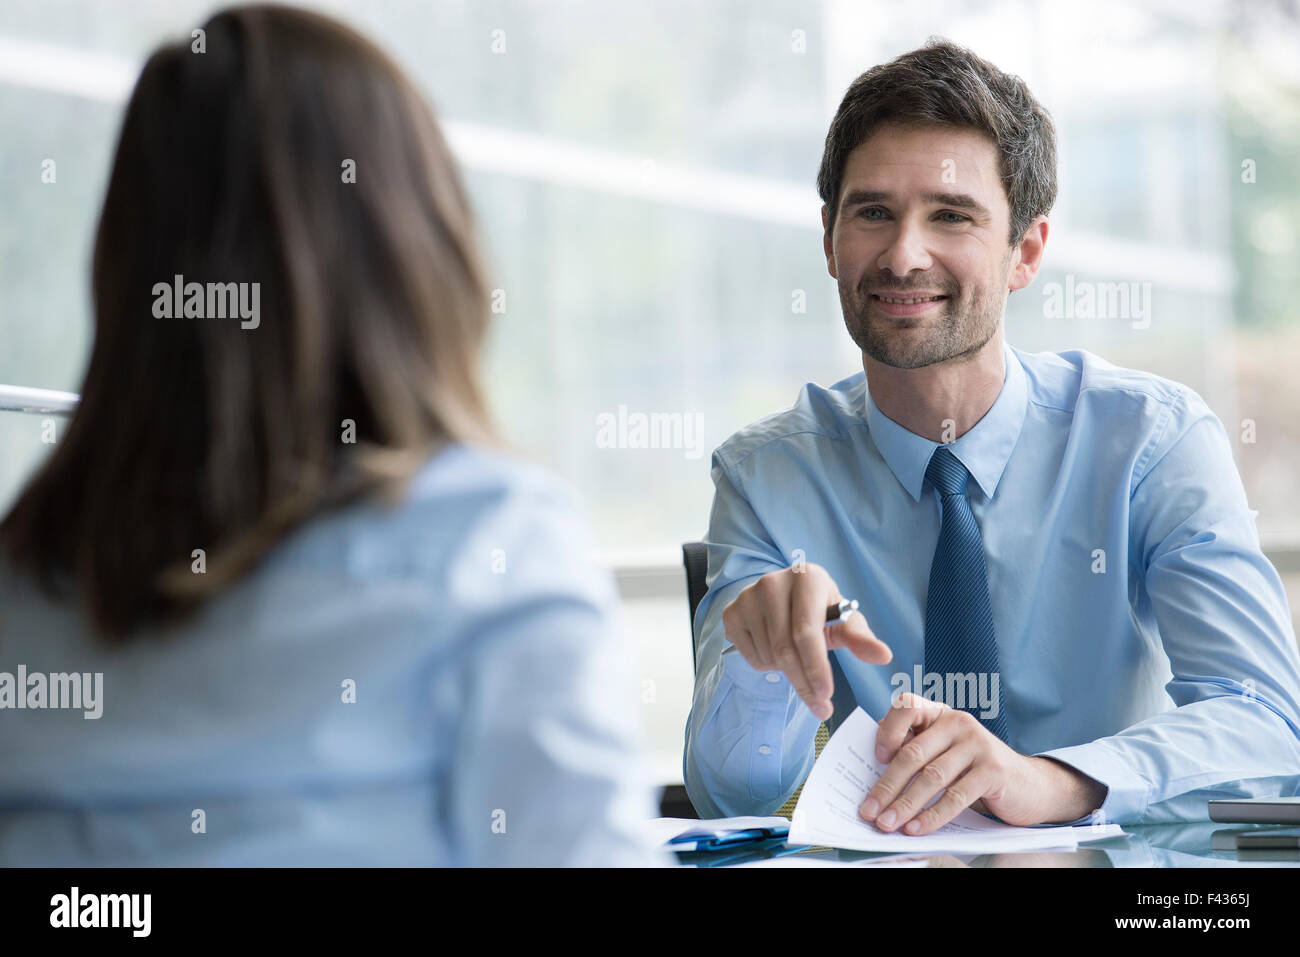 Insurance agent meeting with prospective customer - Stock Image